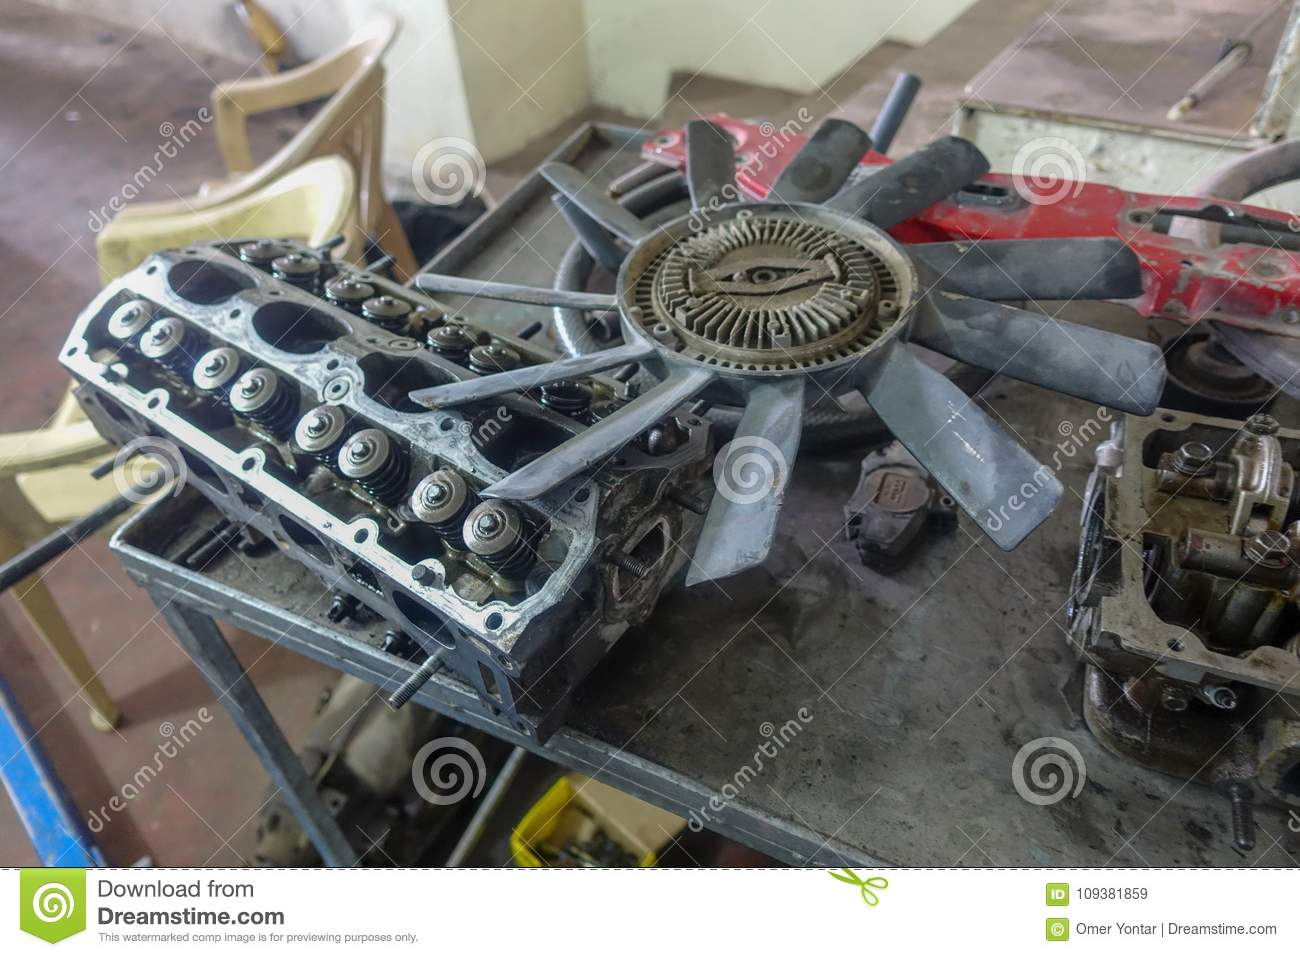 Garage and and car parts stock image. Image of parts - 109381859